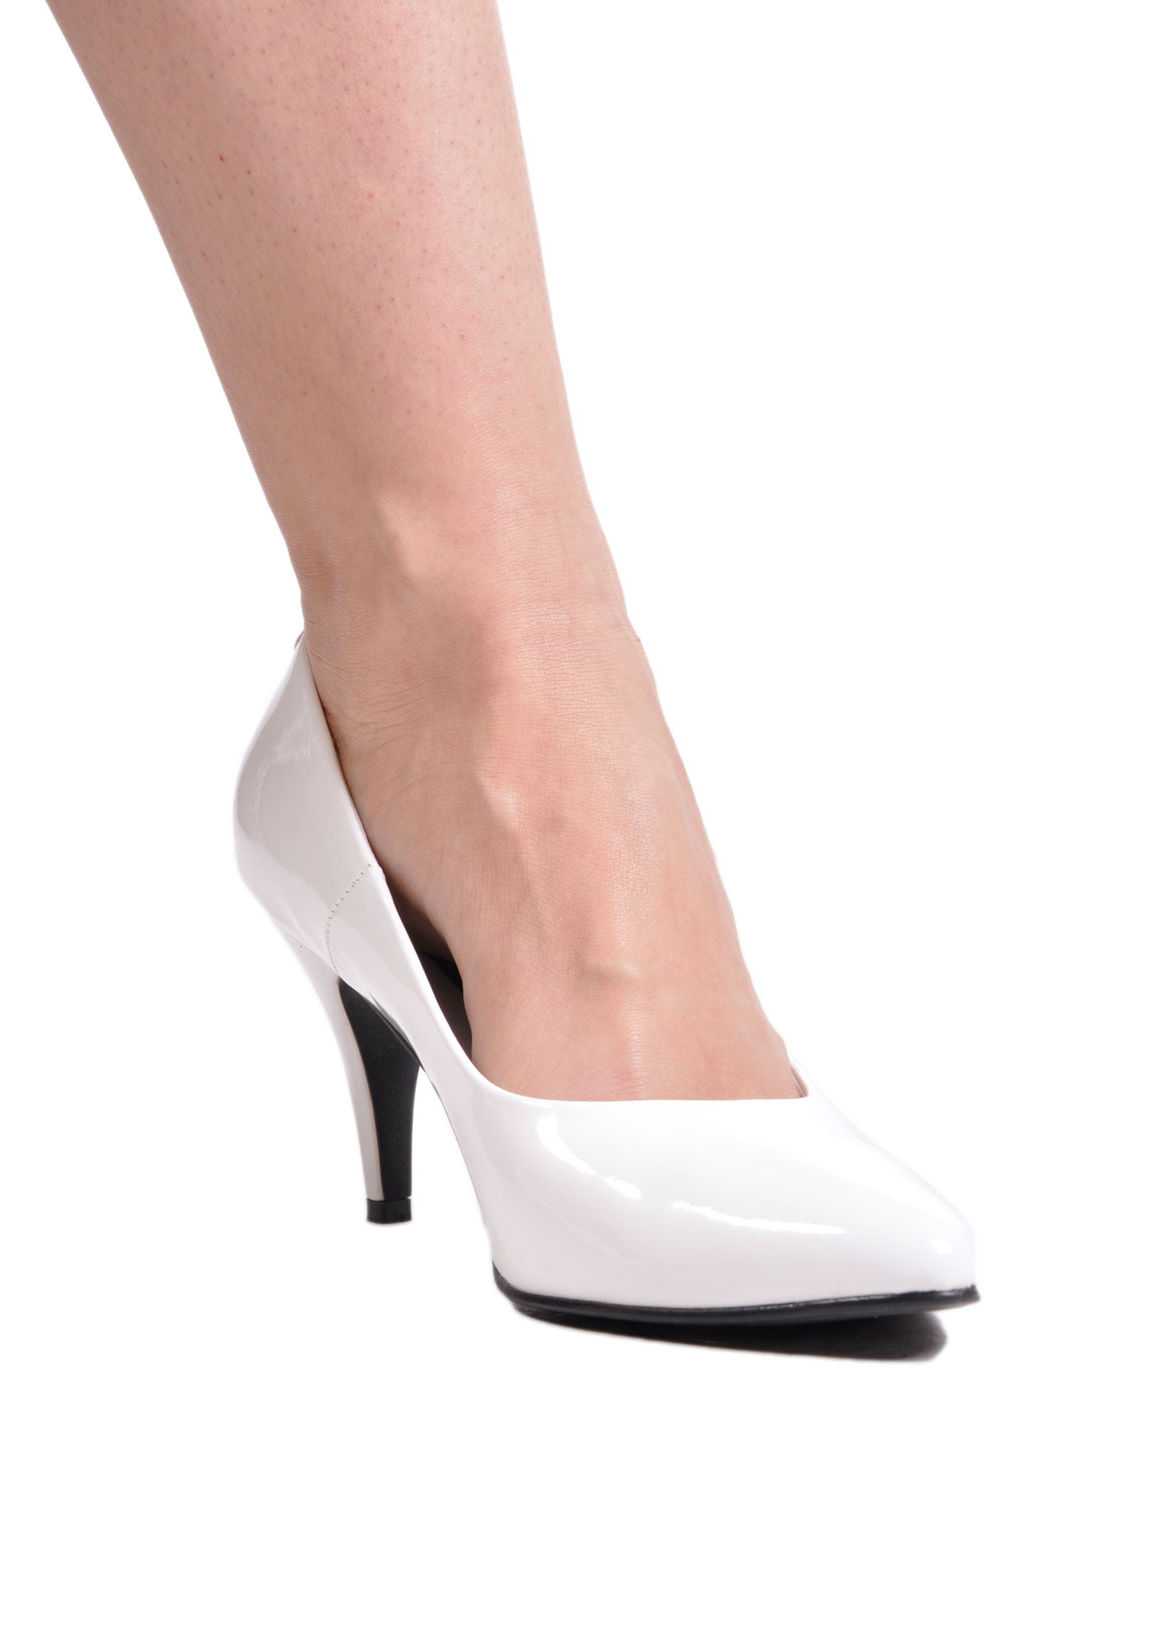 High Heels, Sexy Shoes, Find High Heels in many colors and sizes here, Pierre Silber is your source for high heels and sexy shoes.